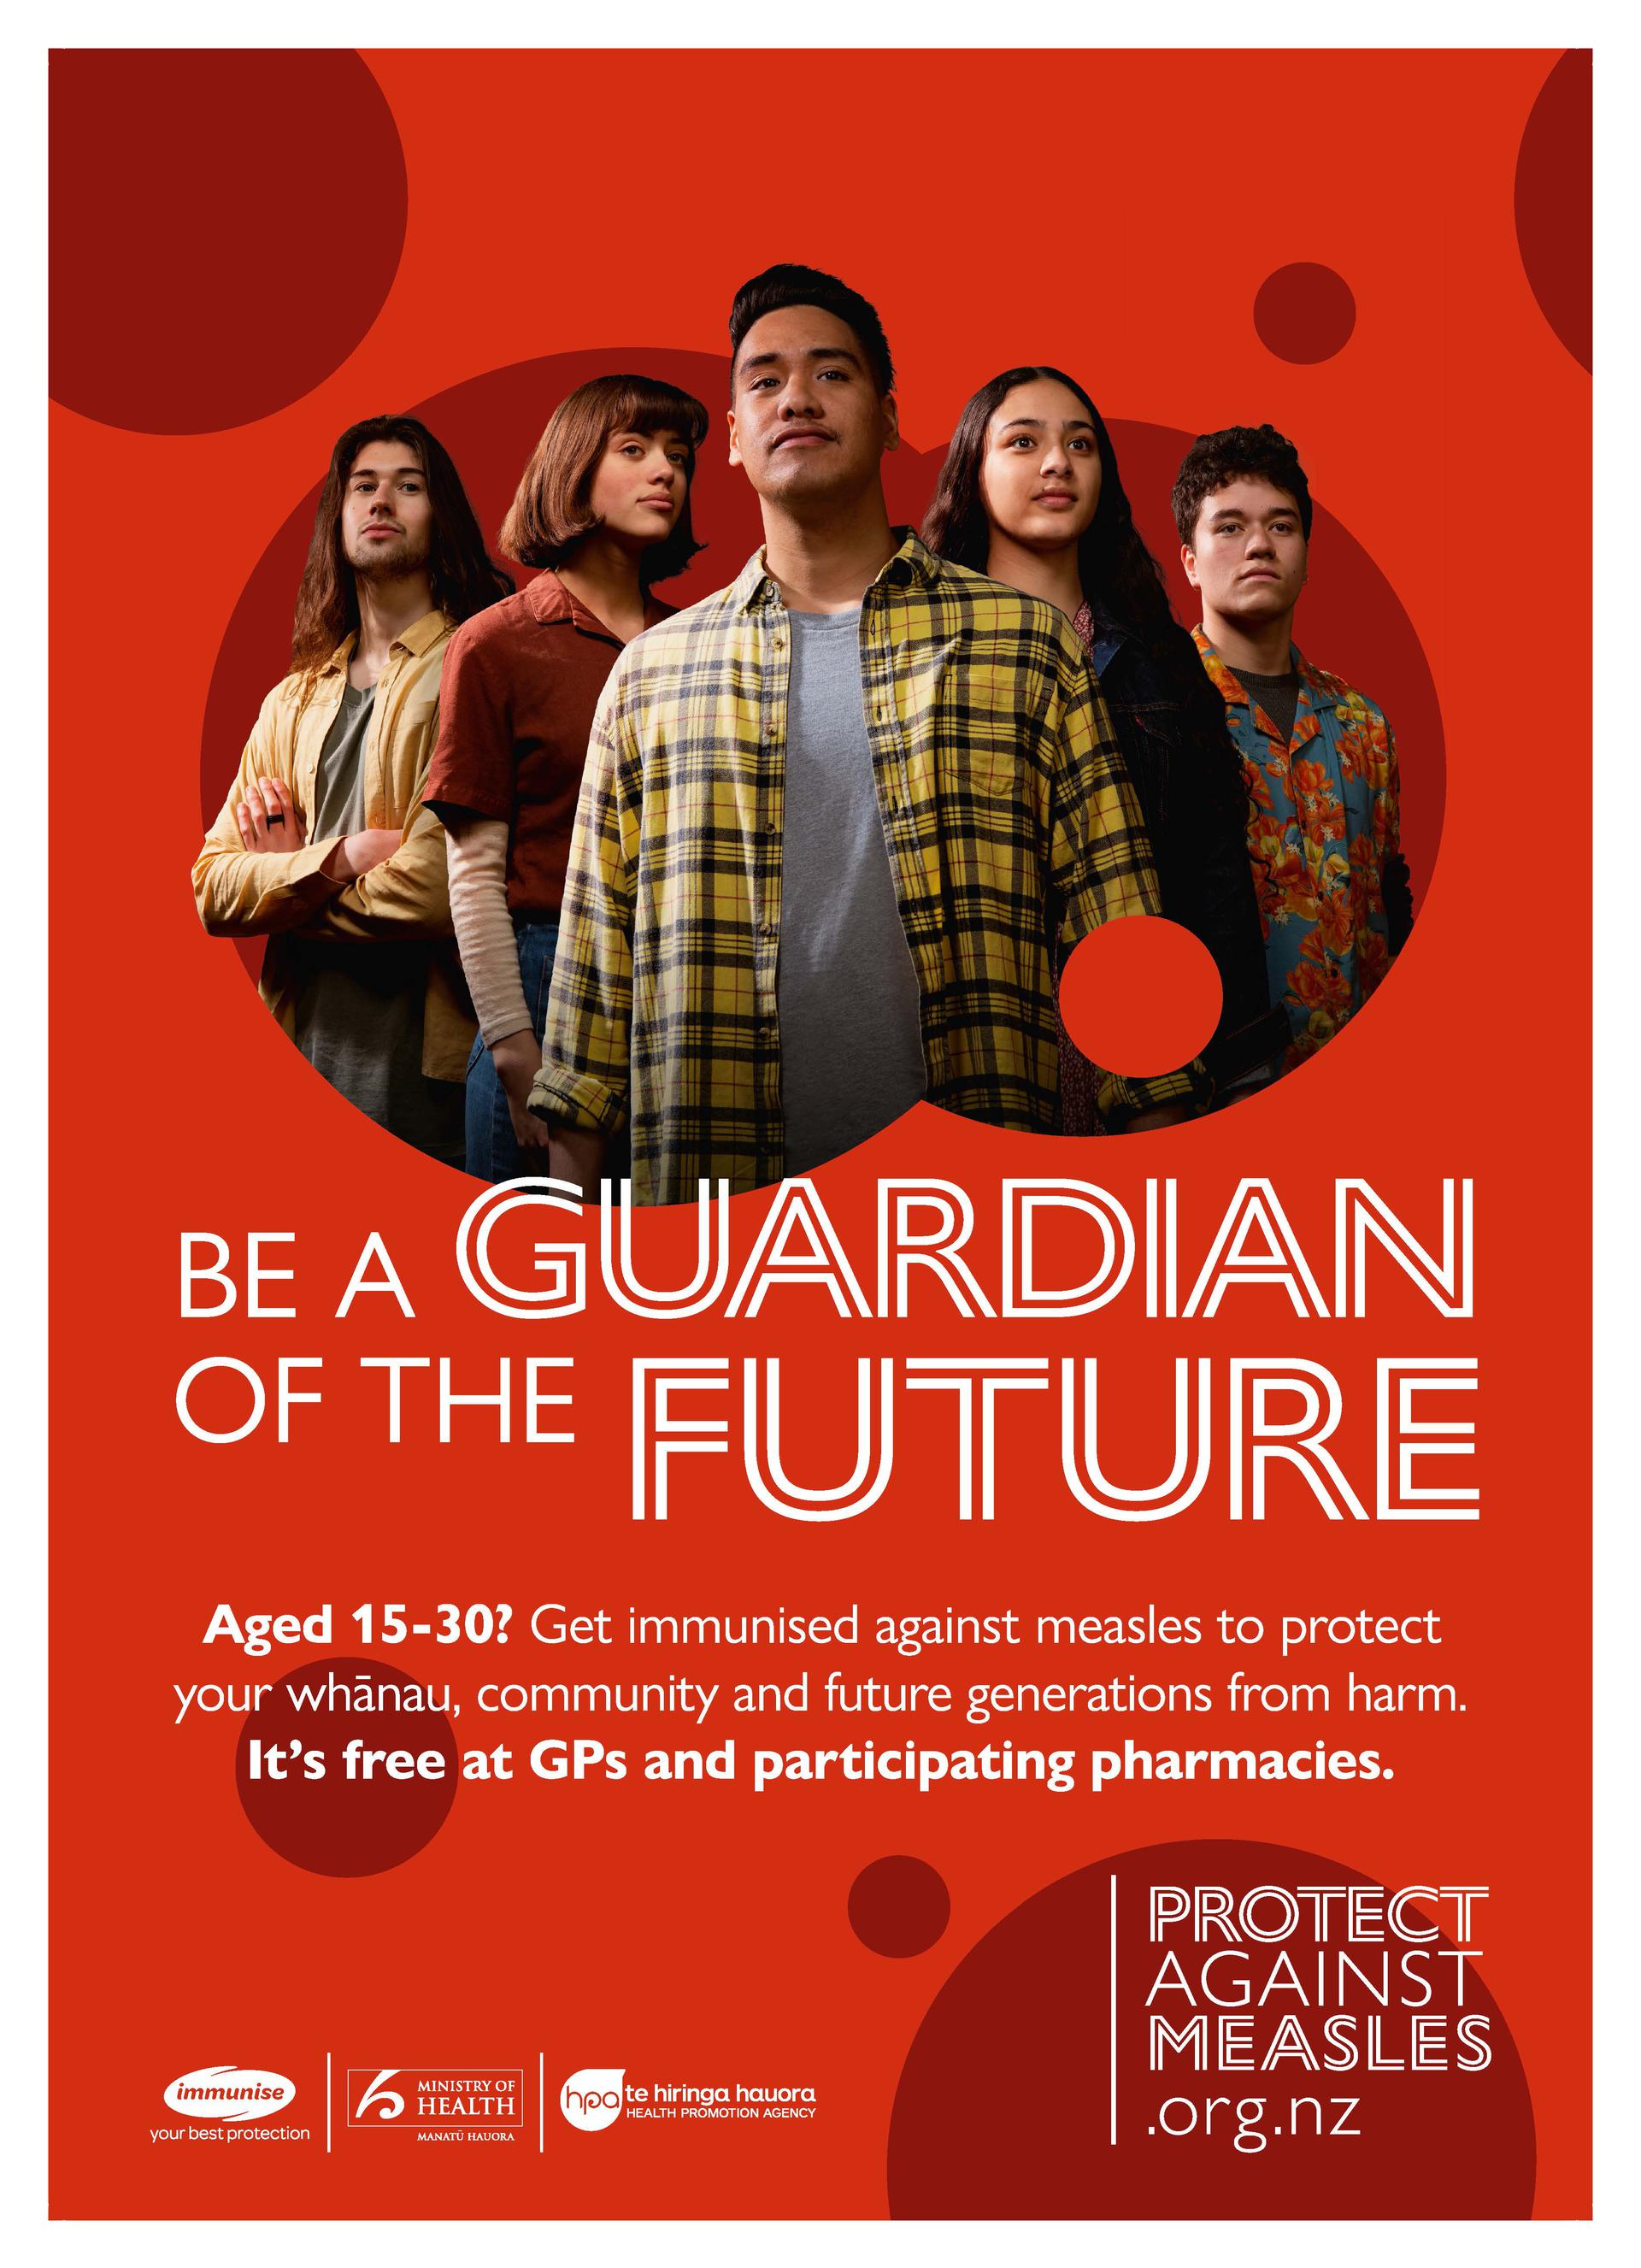 Be a guardian of the future